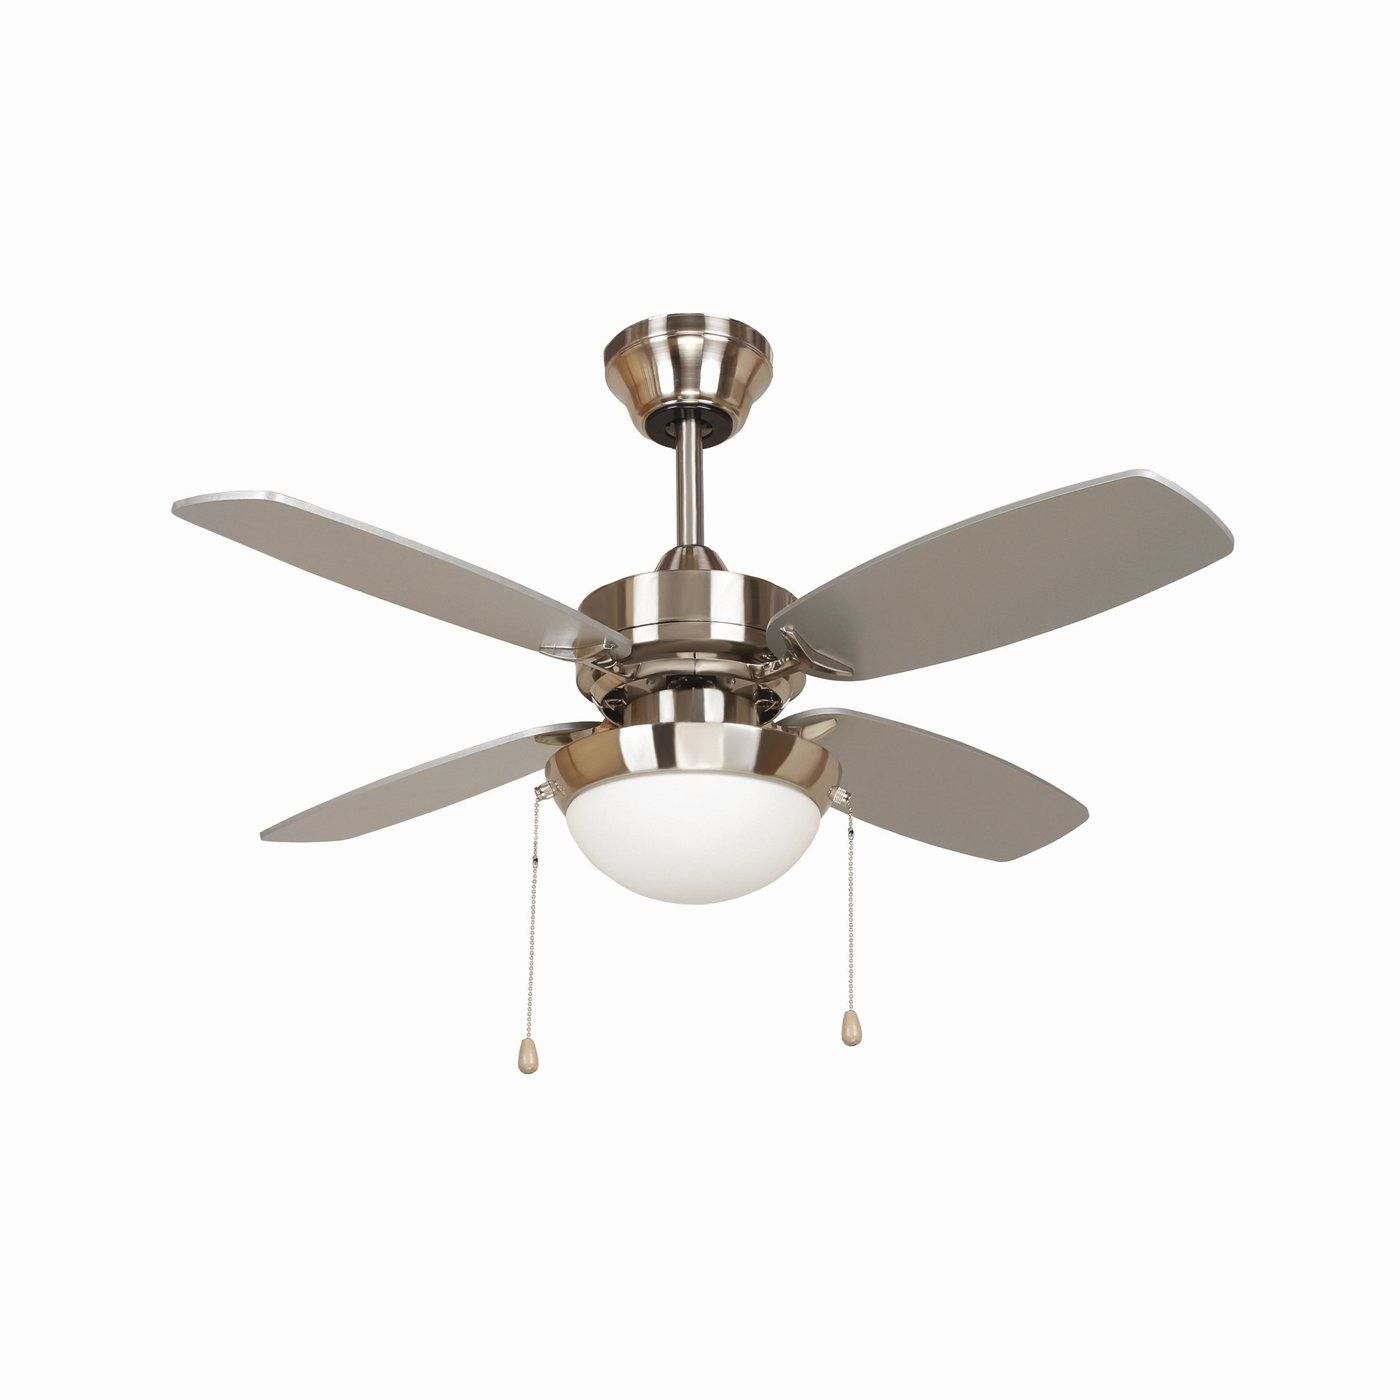 Yosemite Home Decor Ashley 36 Inch Ceiling Fan At Atg S 144